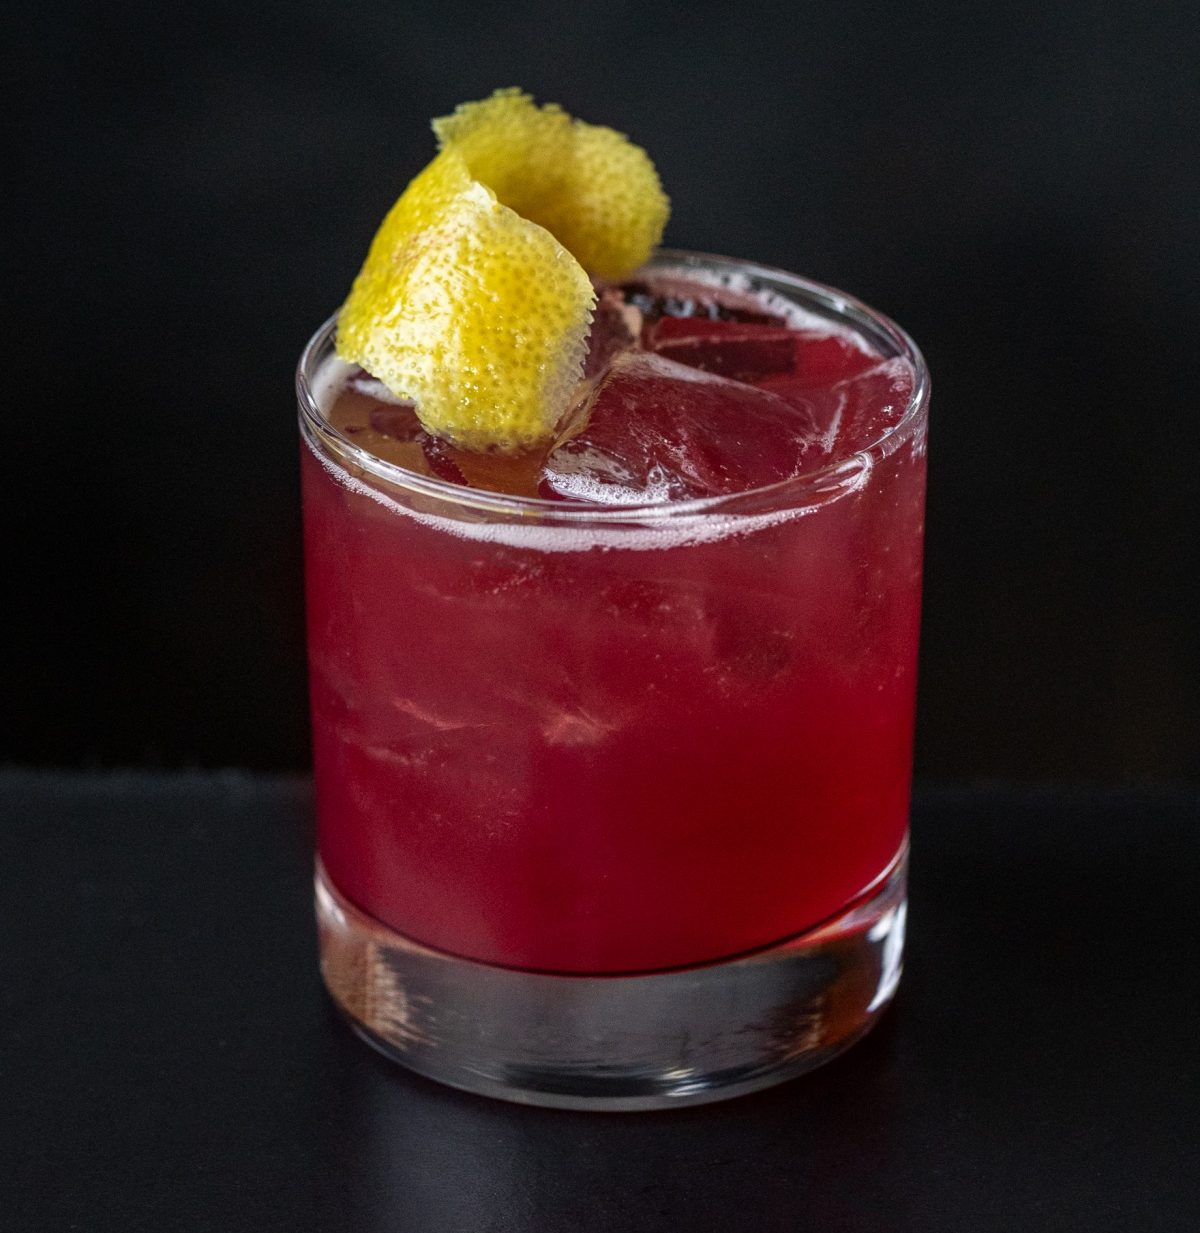 09-2019_OTOTO_Cocktail_Final Images_Web-Res_20